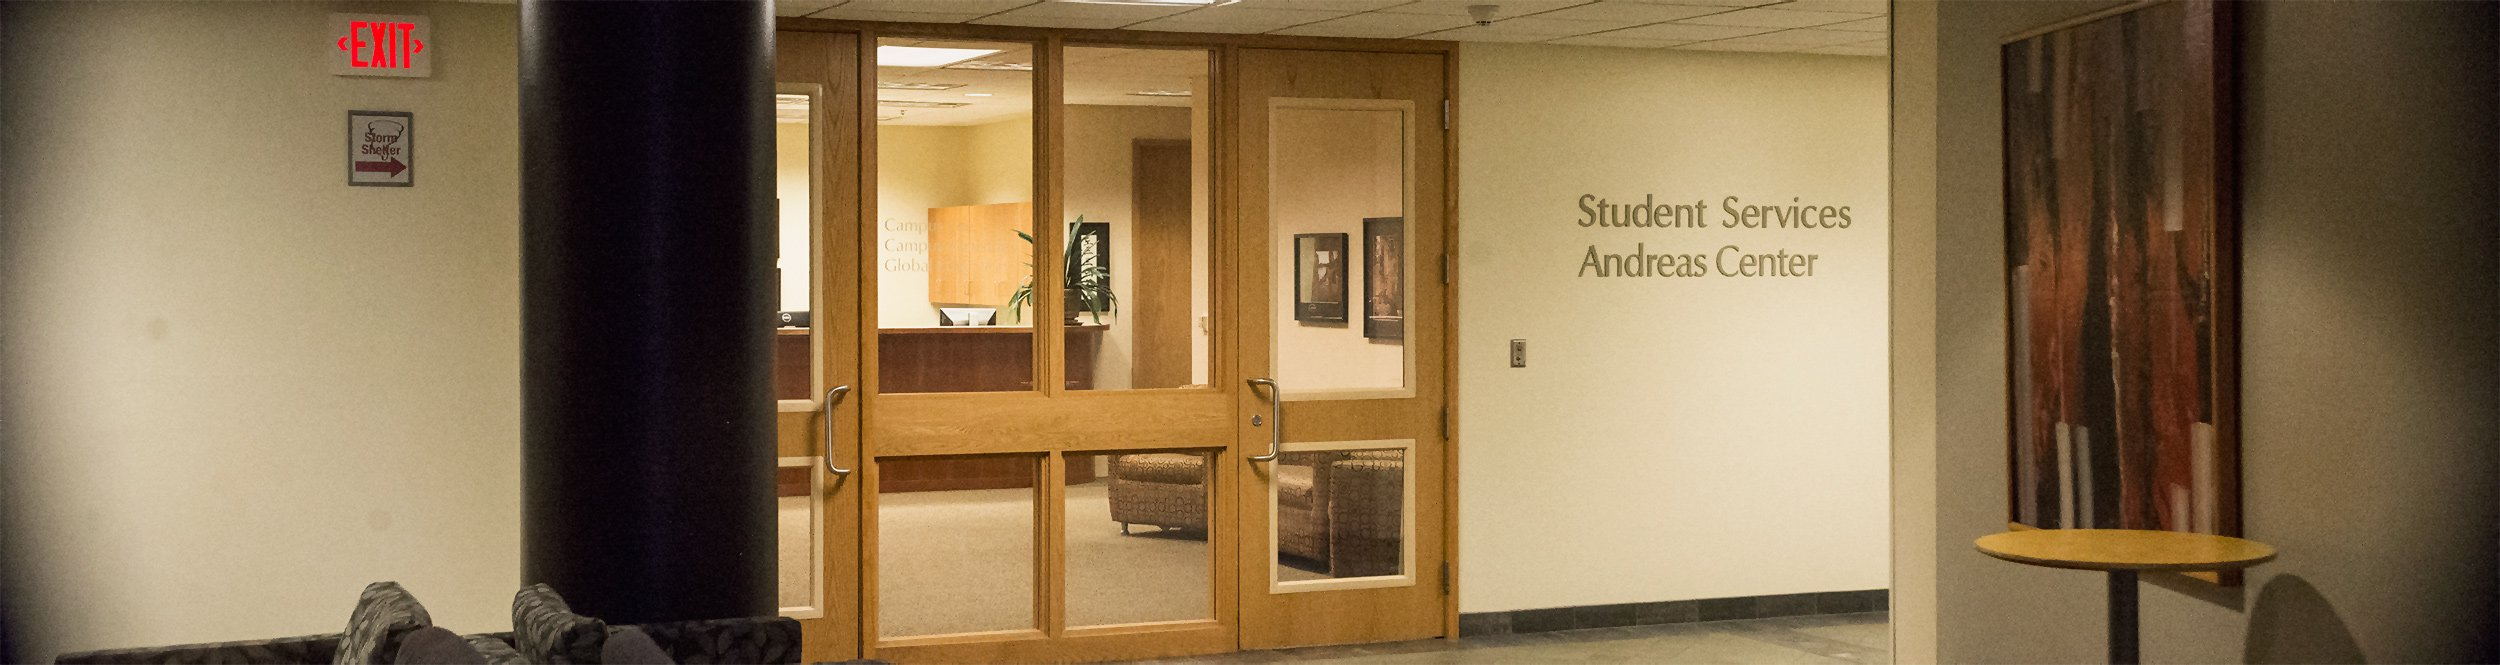 The student services center.